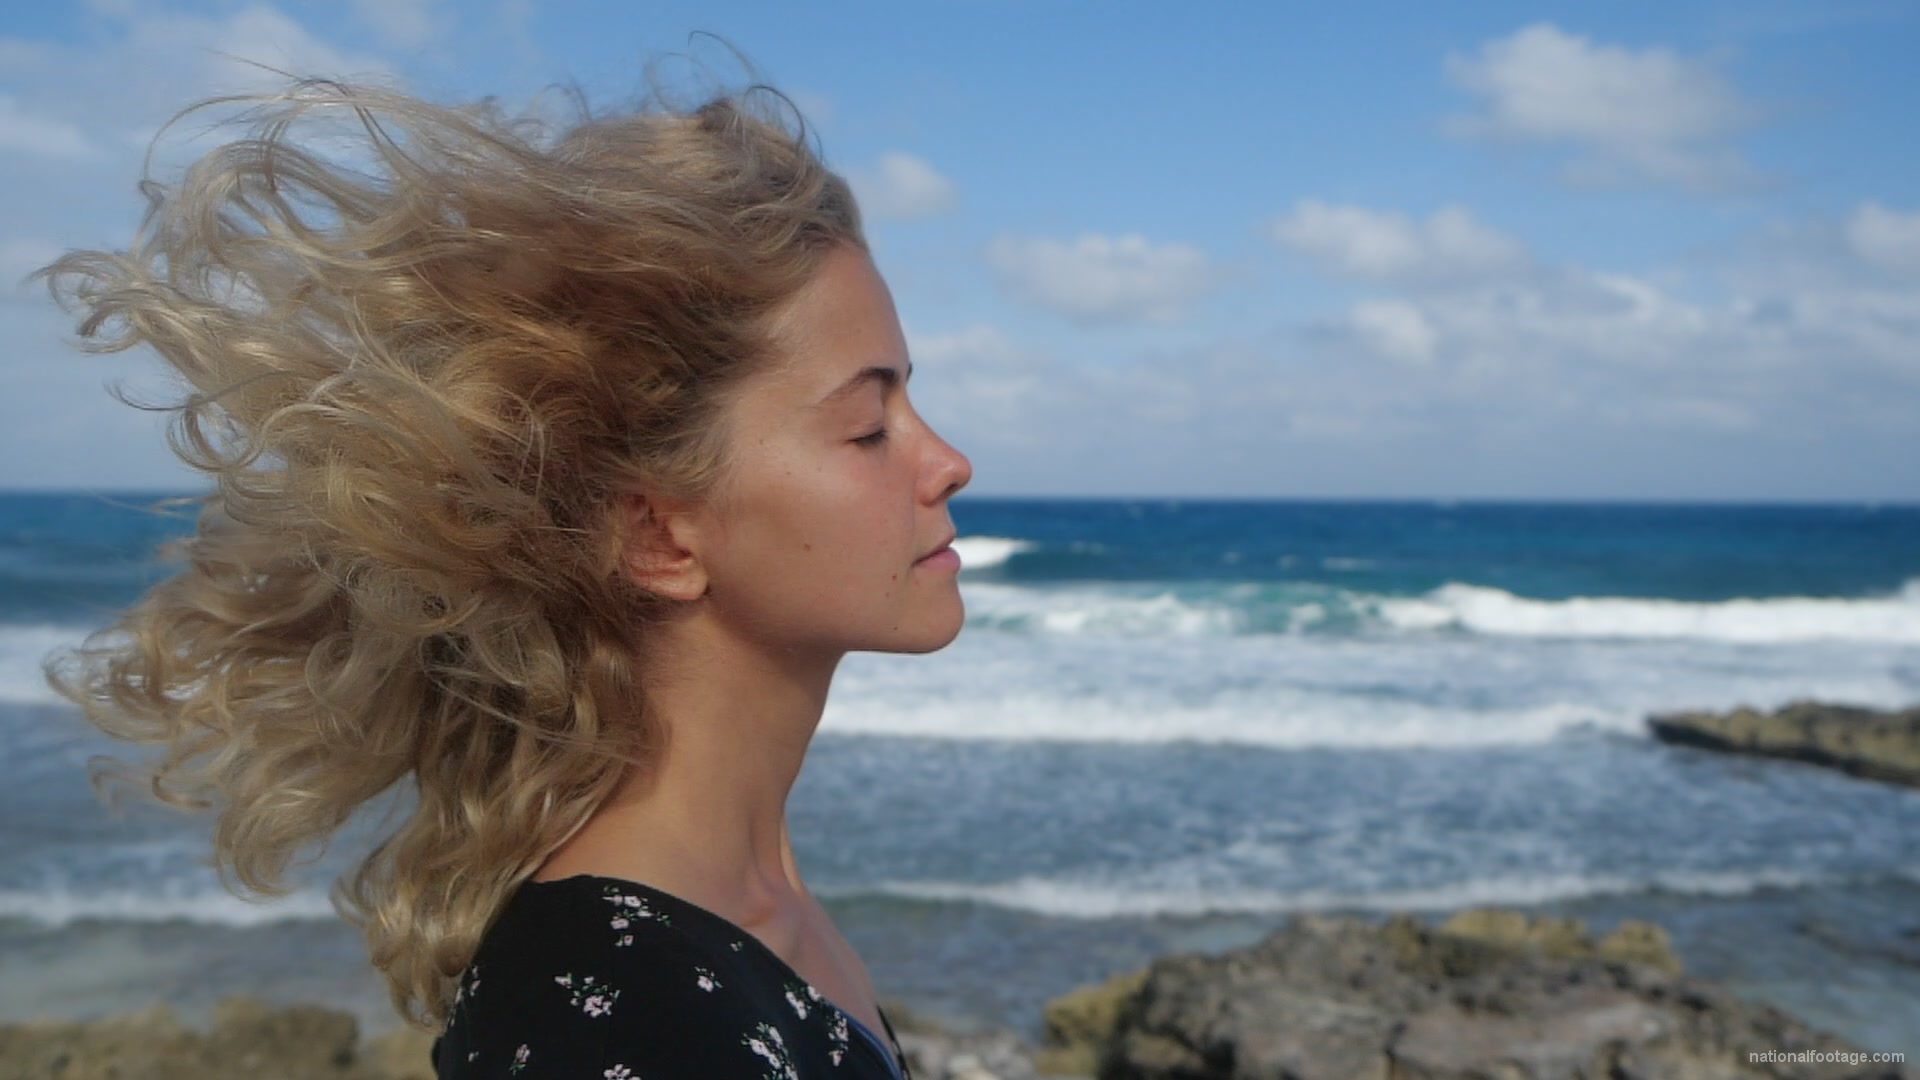 vj video background Blonde-girl-enjoy-the-wing-on-the-sea-ocean-in-slow-motion_003